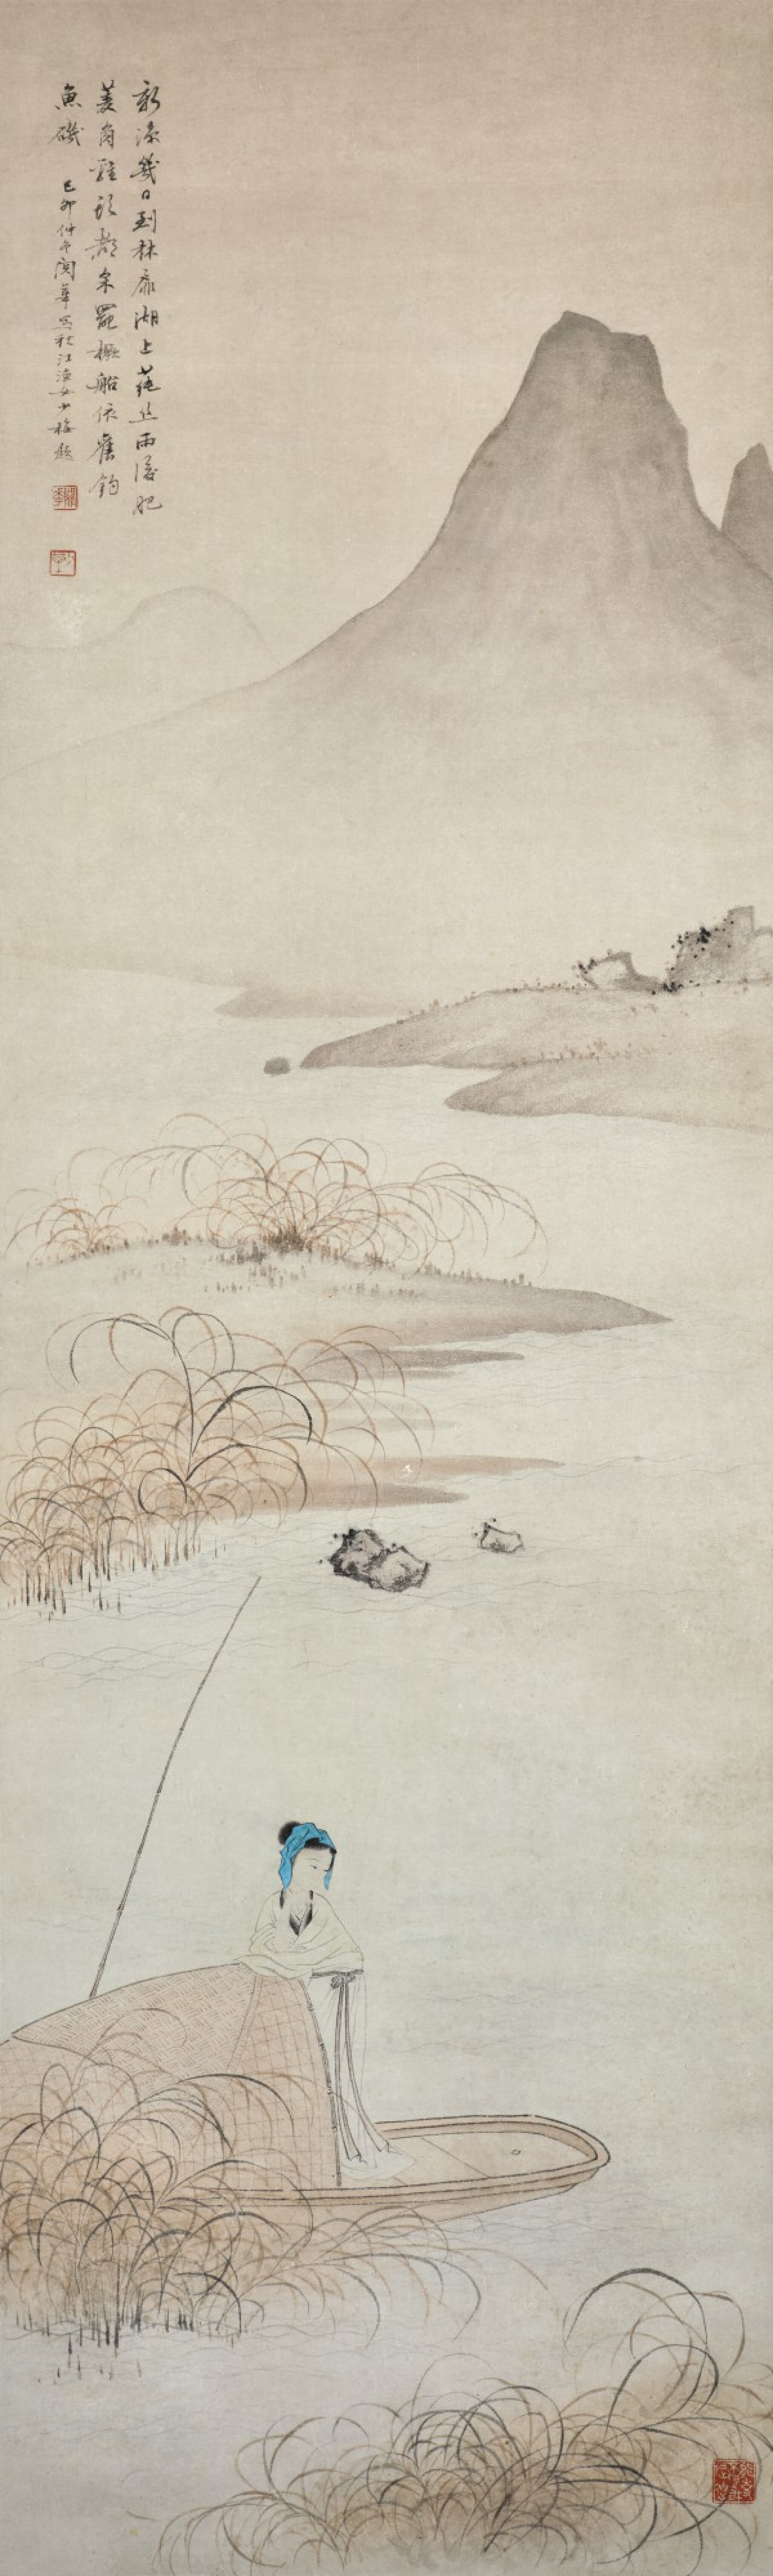 View full screen - View 1 of Lot 46. GUAN HUA, LADY BY THE BOAT   關華 《漁女》  設色紙本 立軸.